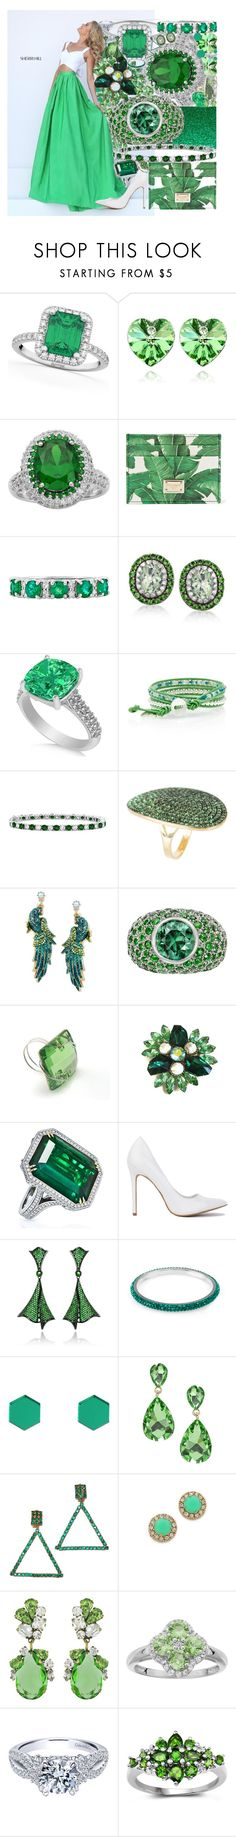 """Untitled #4221"" by brooke-evans12 ❤ liked on Polyvore featuring Sherri Hill, Allurez, Dolce&Gabbana, Effy Jewelry, Ross-Simons, Bling Jewelry, Latelita, Betsey Johnson, Wolf & Moon and Kate Spade"